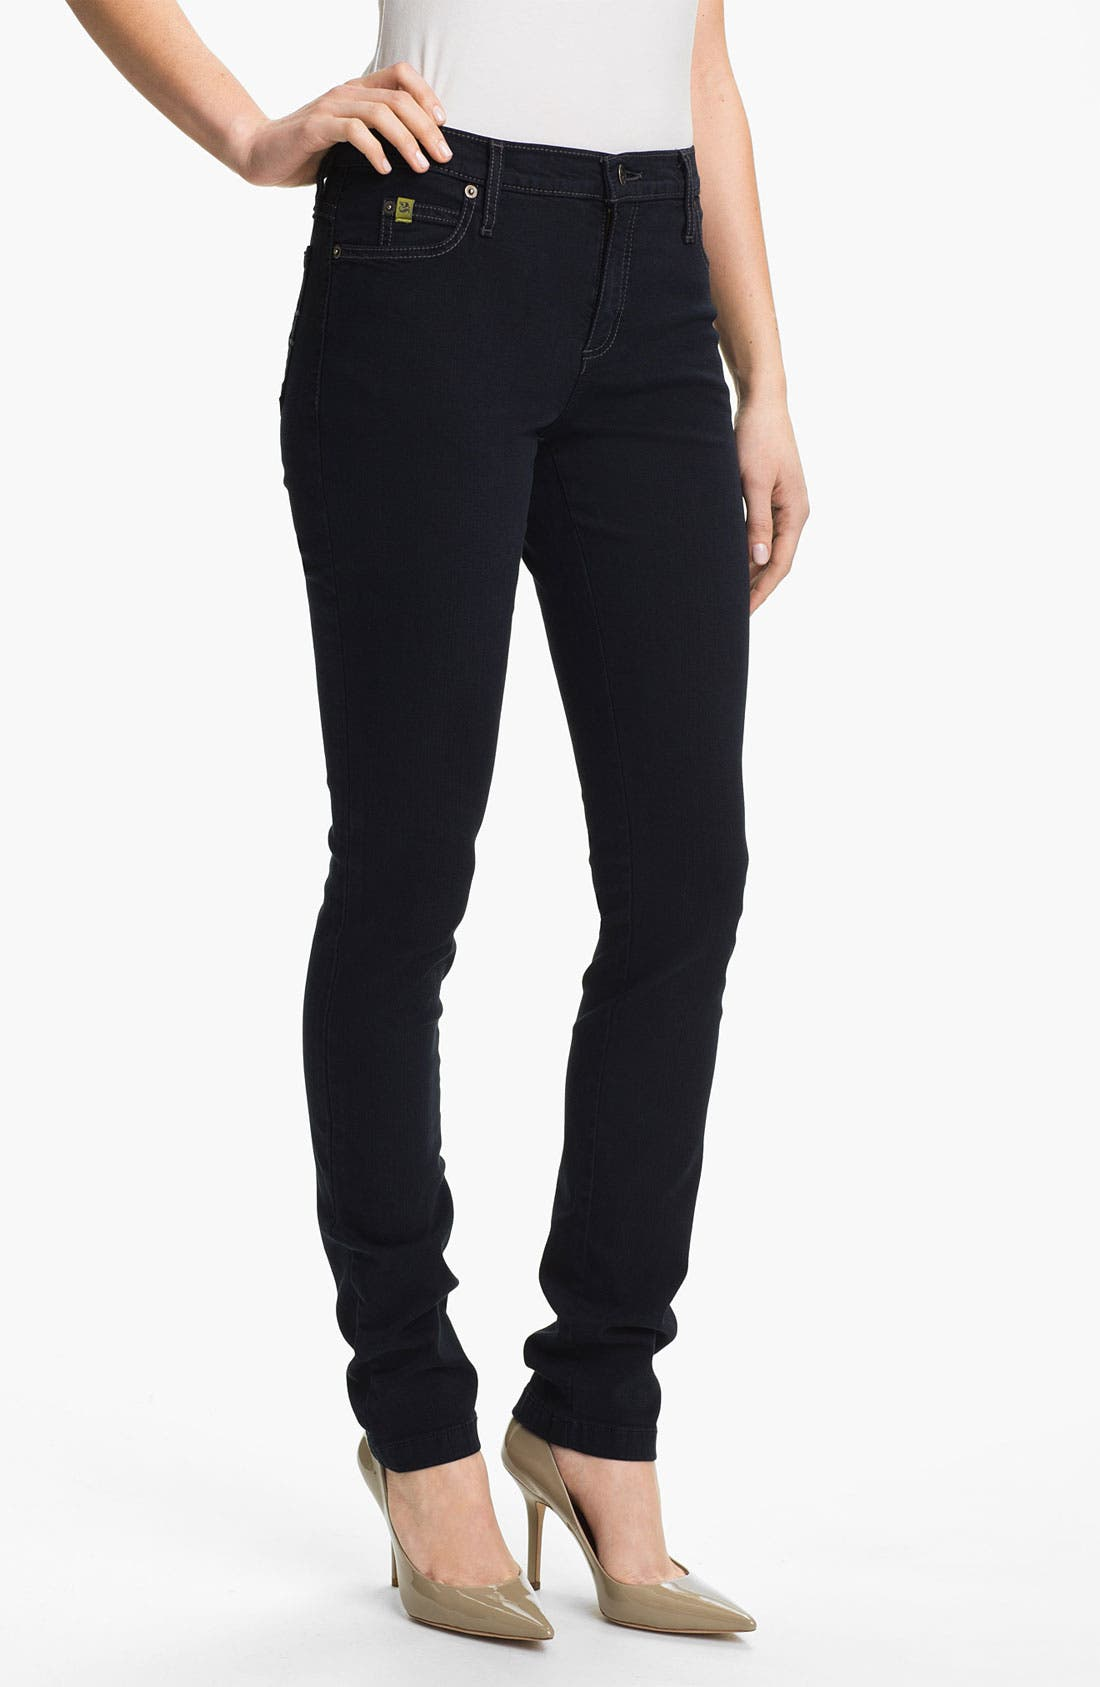 Alternate Image 1 Selected - Yoga Jeans by Second Denim Skinny Jeans